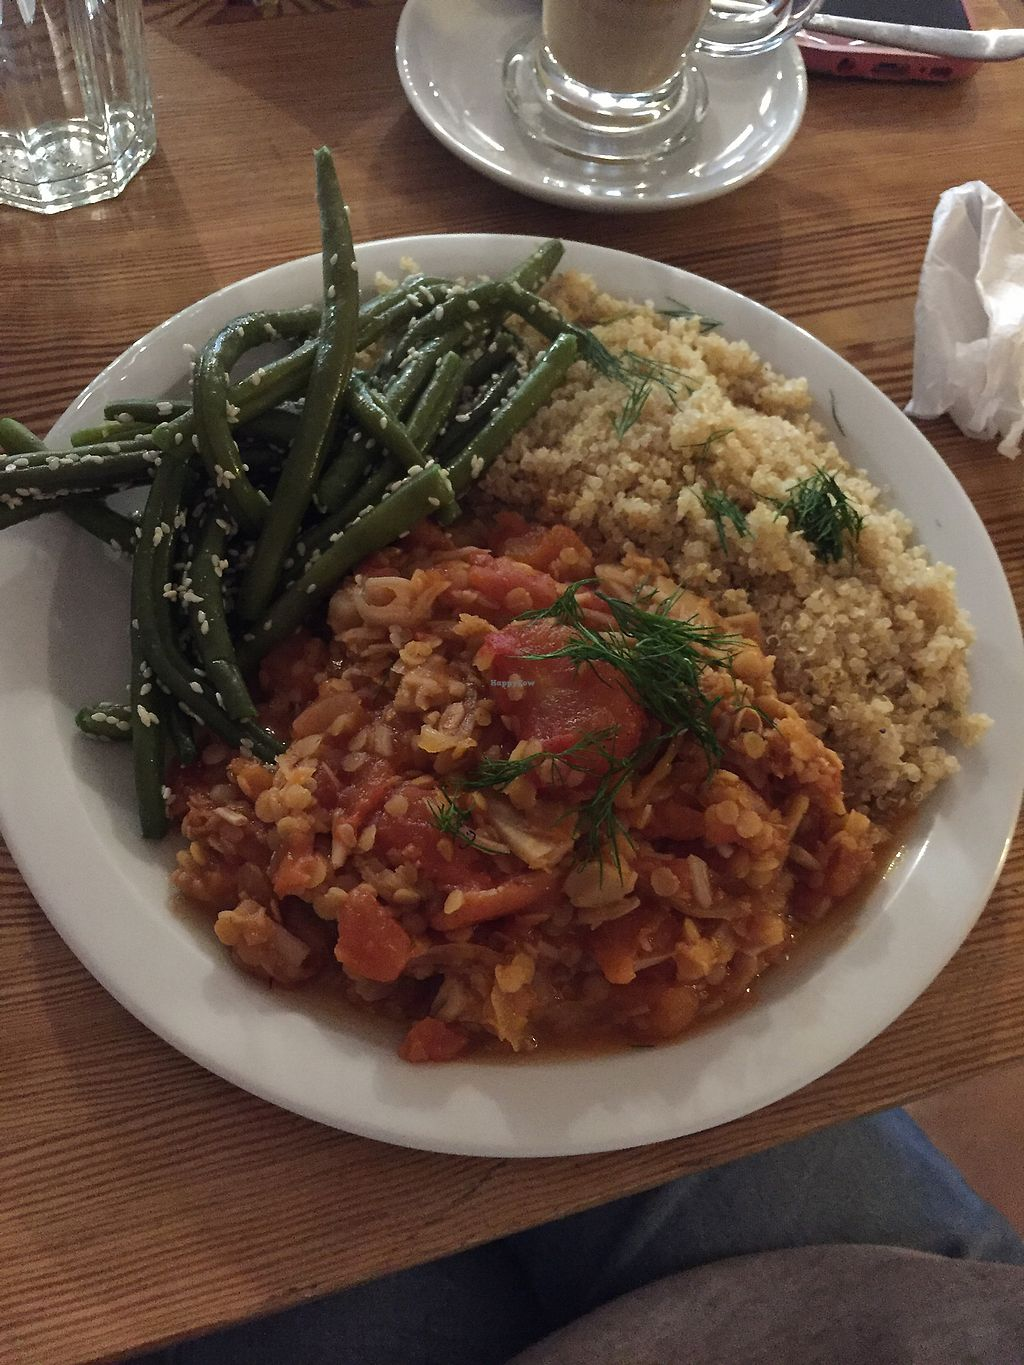 """Photo of Korzenie   by <a href=""""/members/profile/farucha"""">farucha</a> <br/>Lentil stew with quinoa and sesame green beans <br/> September 2, 2017  - <a href='/contact/abuse/image/59043/299976'>Report</a>"""